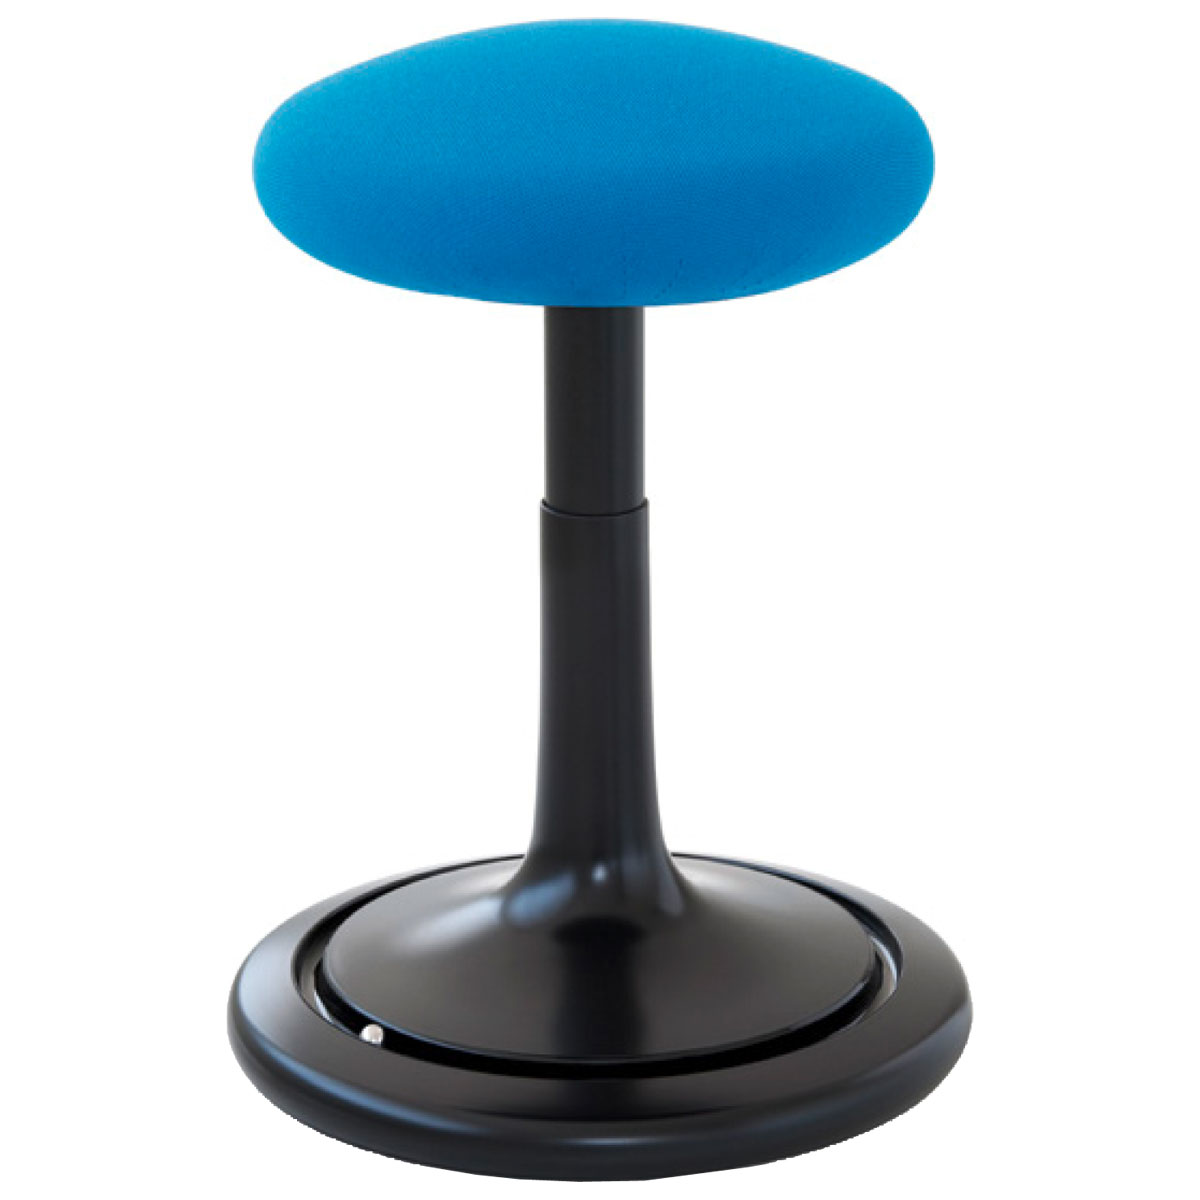 Neutral Posture Ongo Stool Shop Neutral Posture Seating